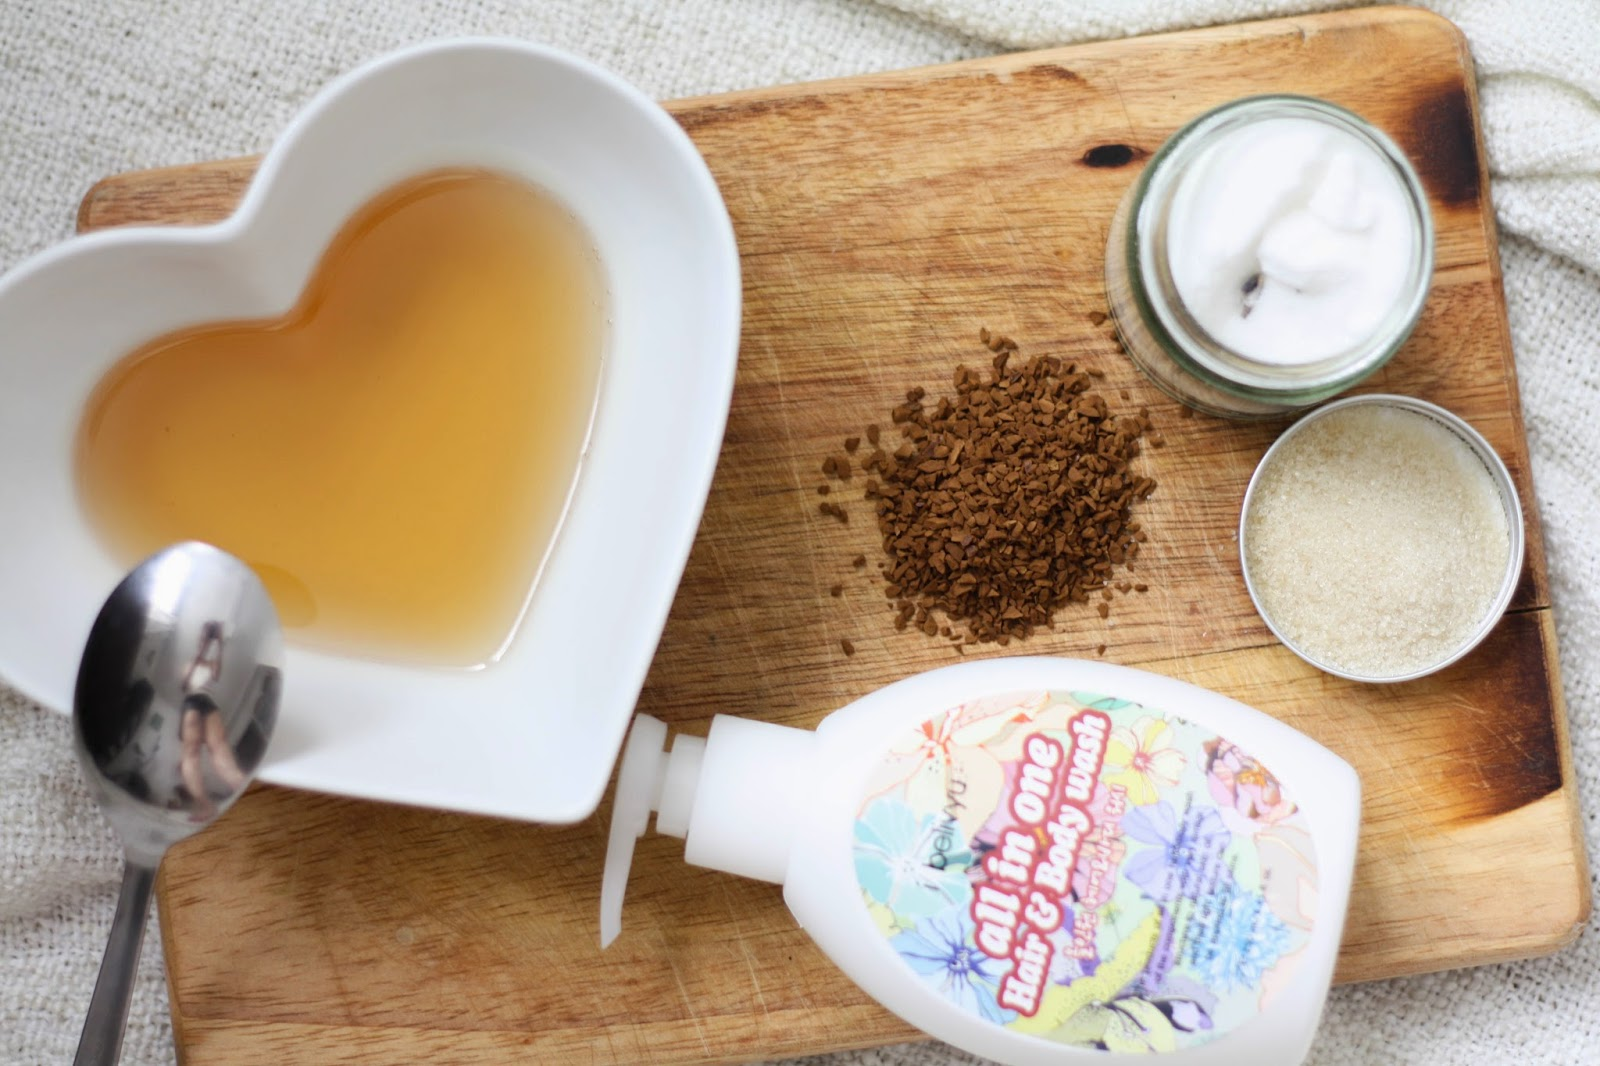 Homemade exfoliator recipe